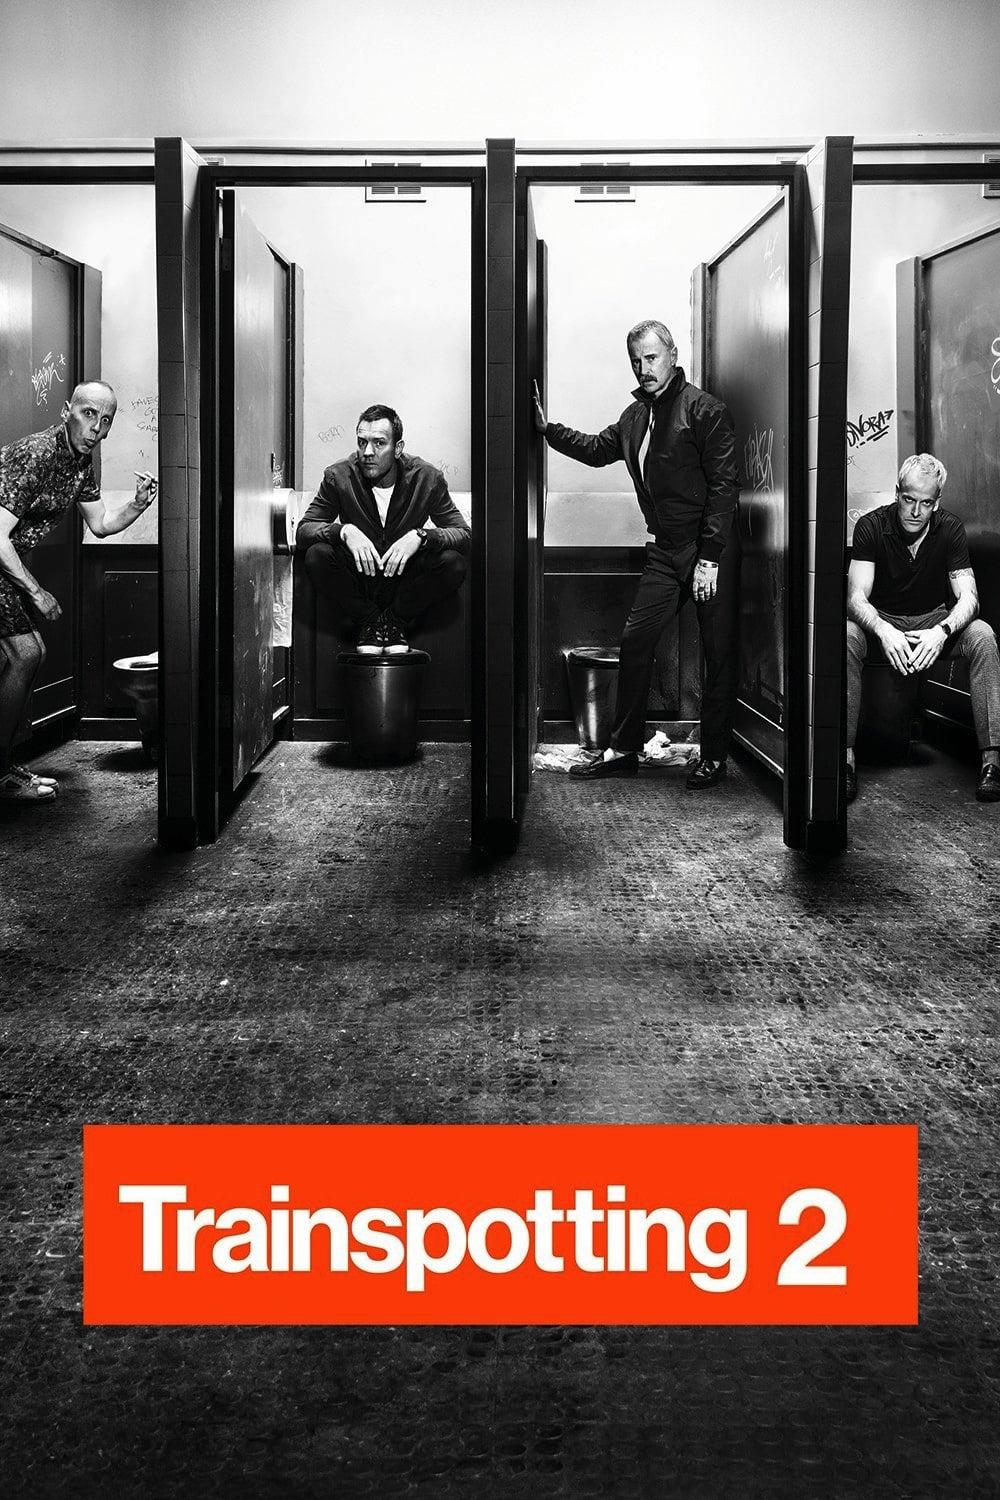 an introduction to the analysis of trainspotting